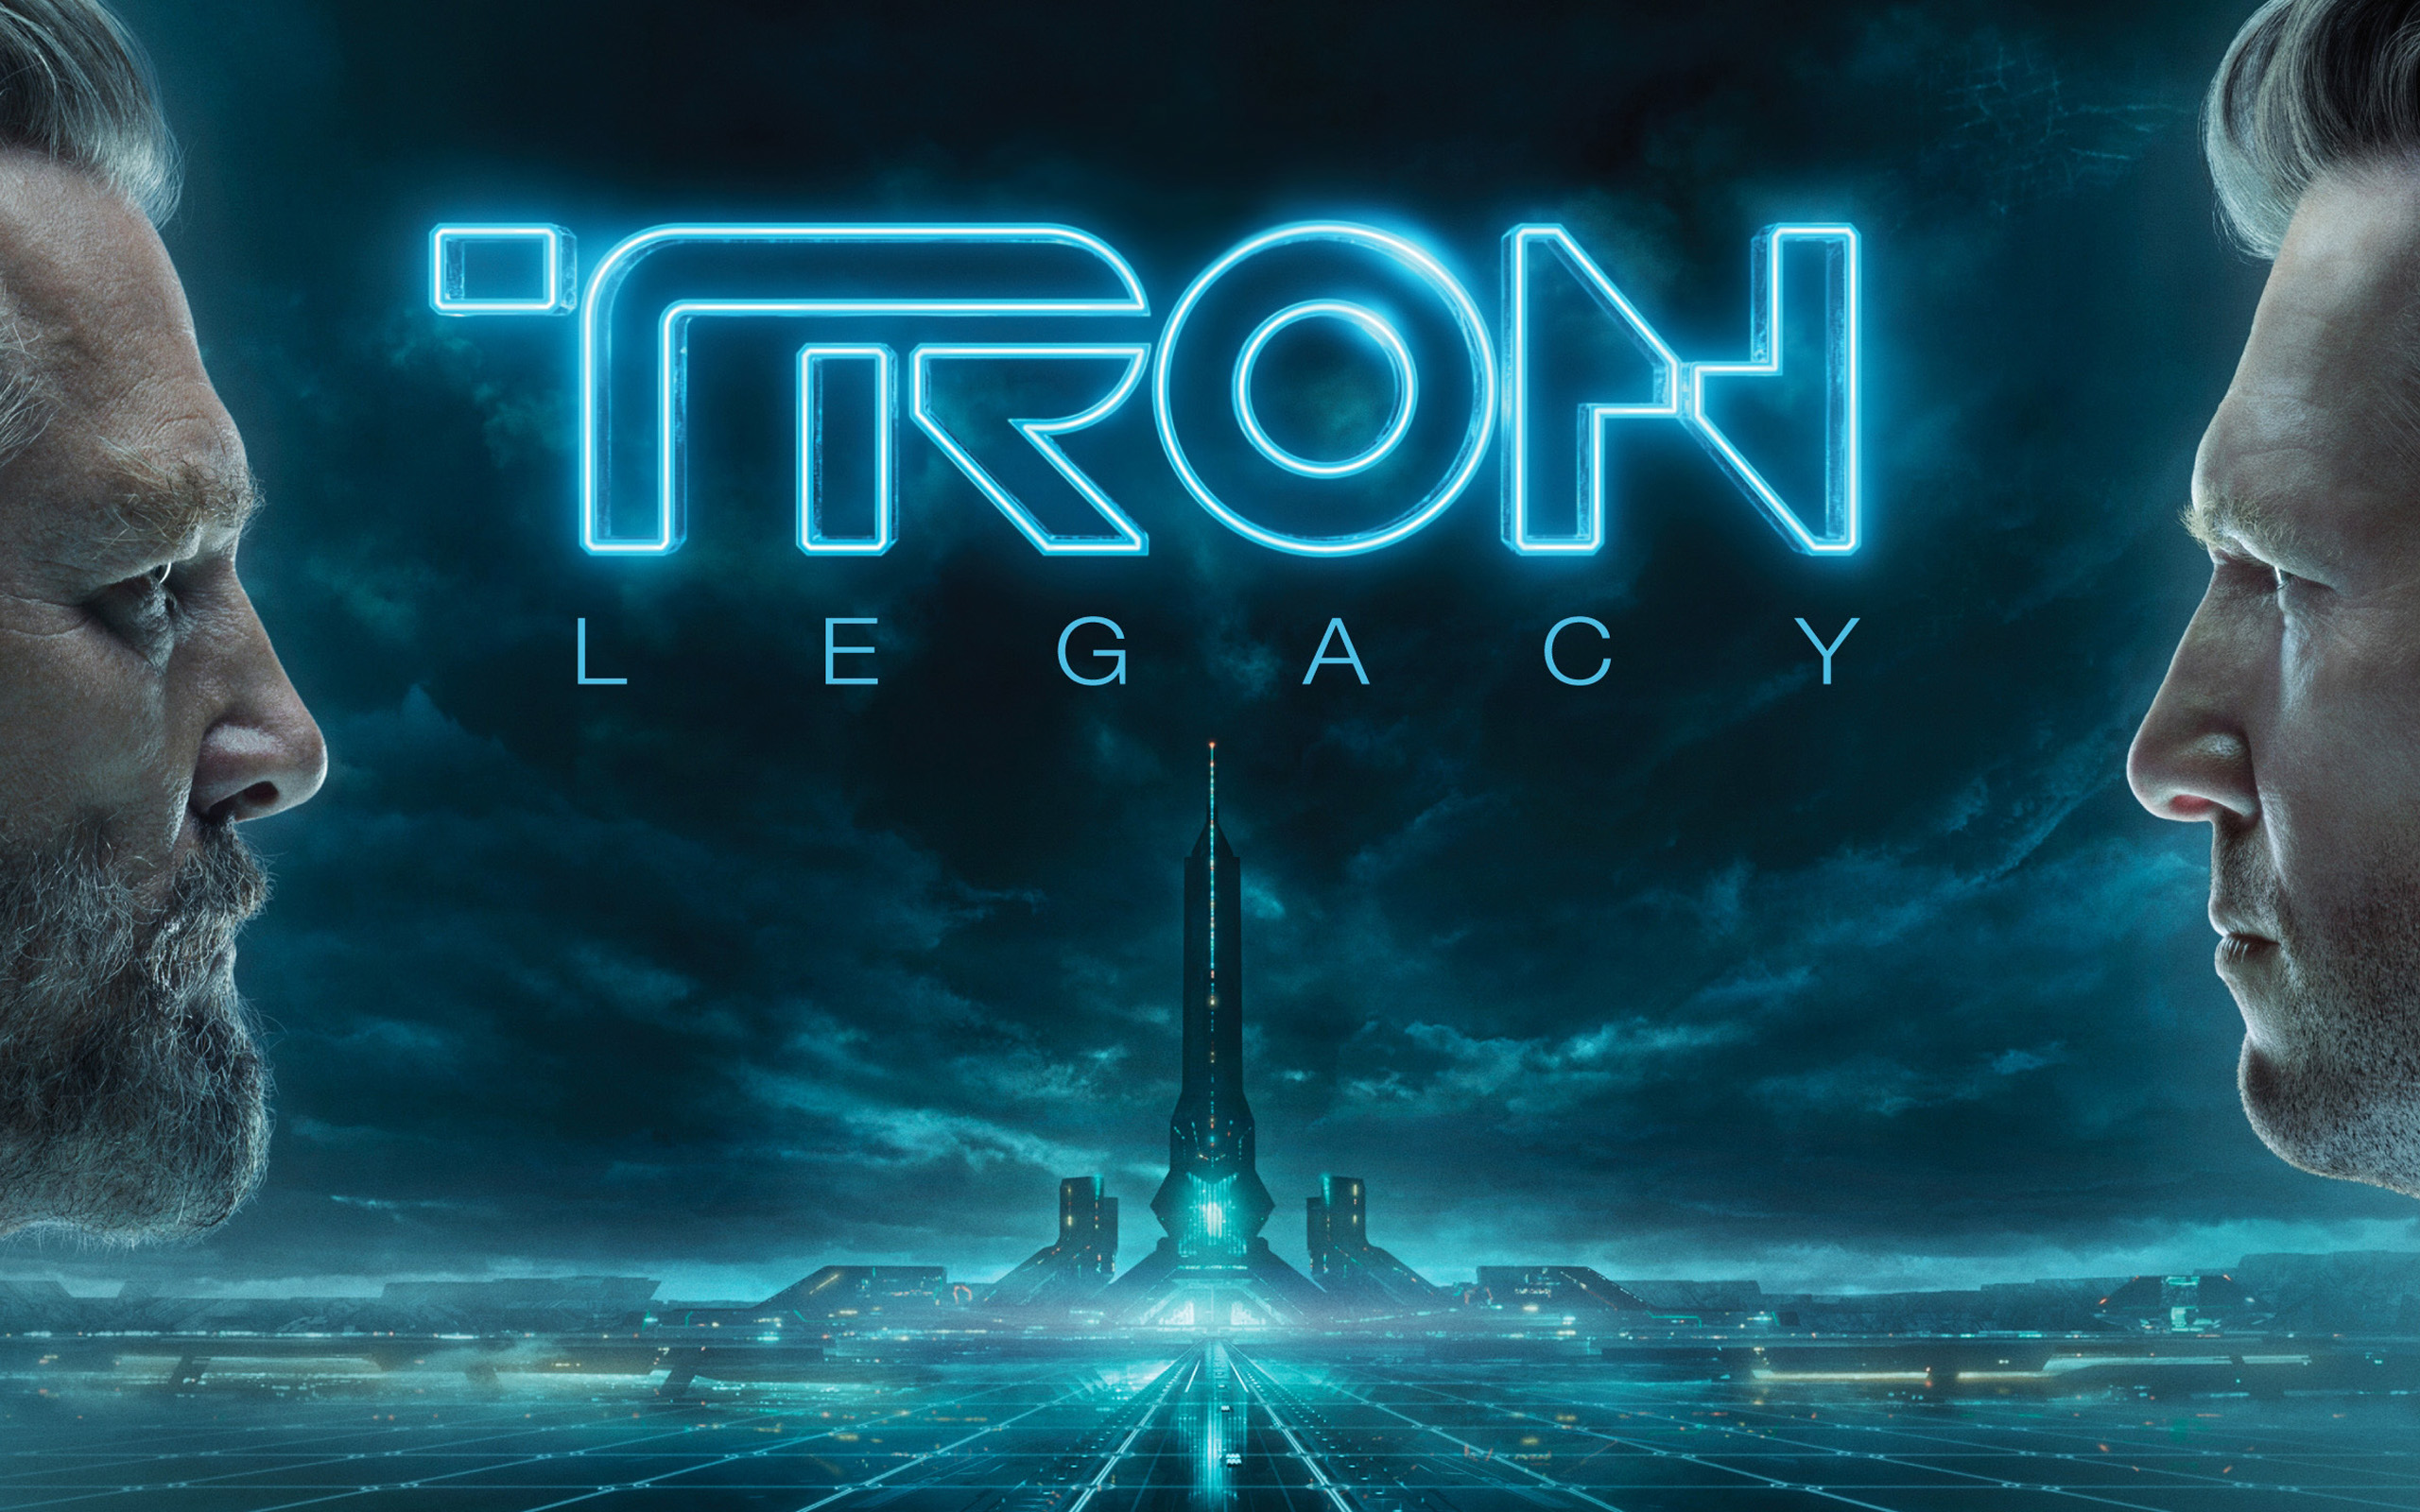 Happiness Quotes Wallpaper Iphone Over 80 Tron Legacy Original And Concepts Wallpapers